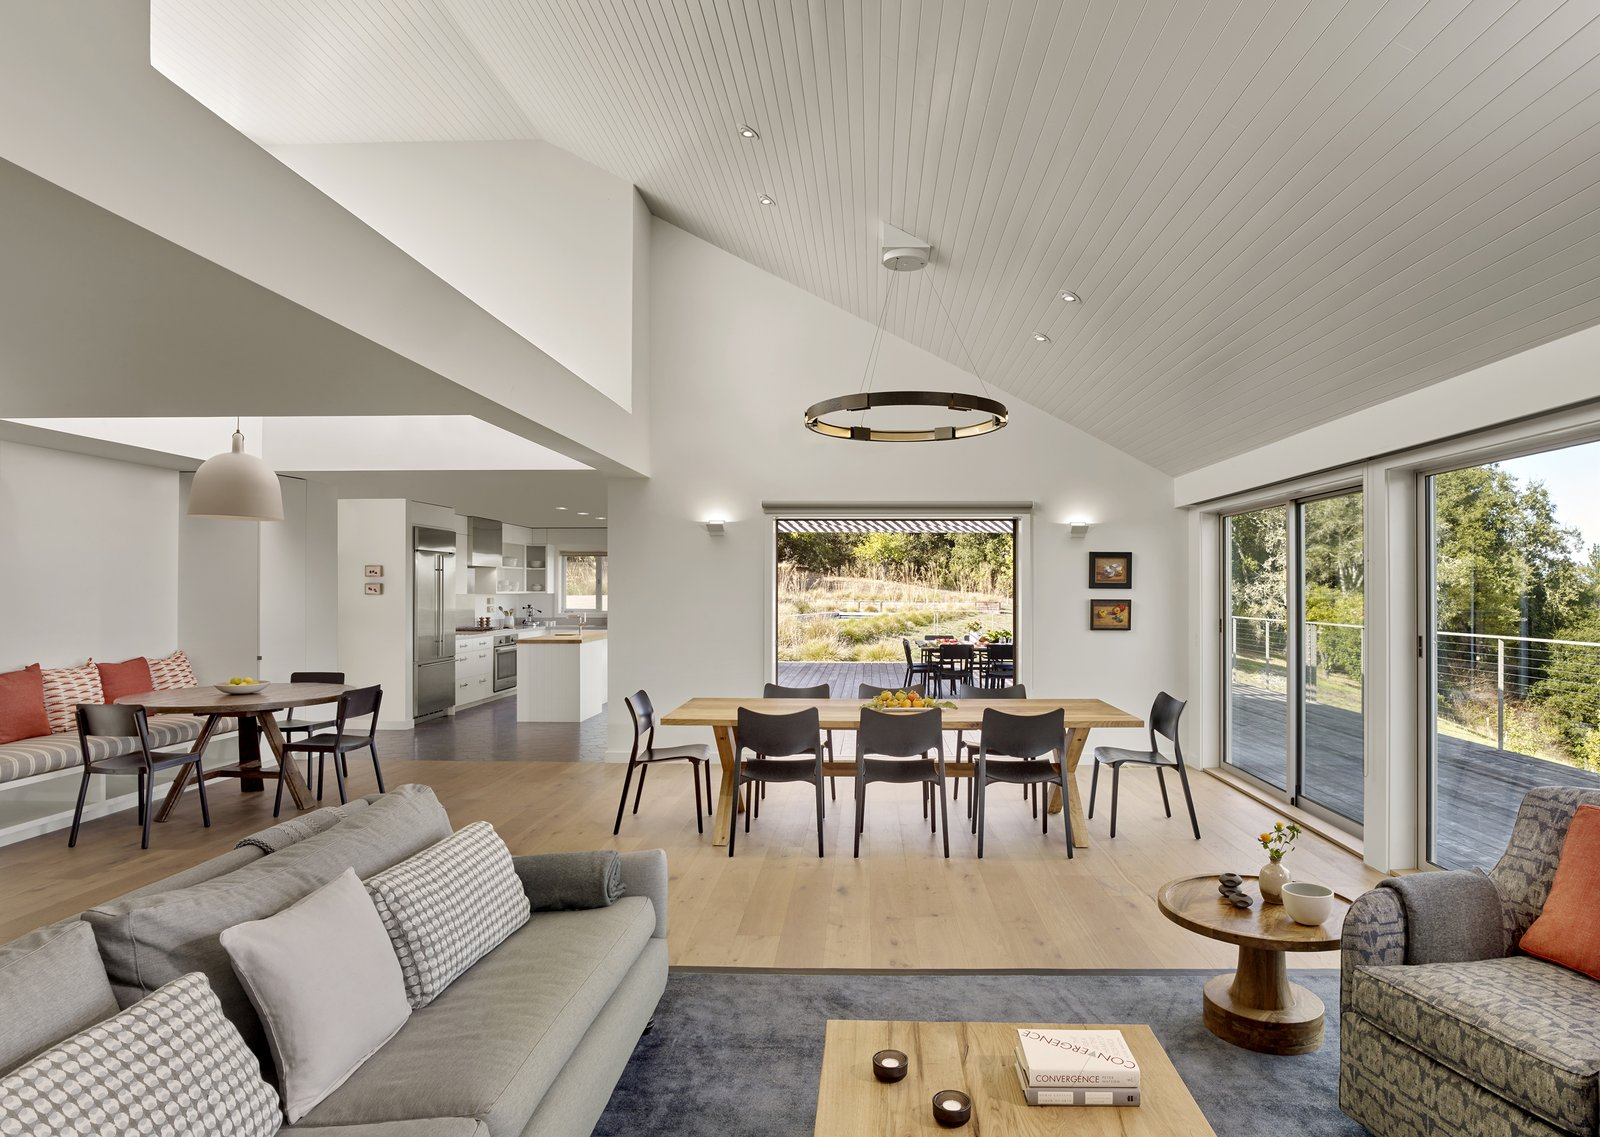 Dining Room, Ceiling Lighting, Storage, Bench, Chair, Table, Ceramic Tile Floor, Pendant Lighting, Medium Hardwood Floor, Wall Lighting, Recessed Lighting, Gas Burning Fireplace, Shelves, and Lamps Orchard House Interior  Orchard House by Cary Bernstein Architect